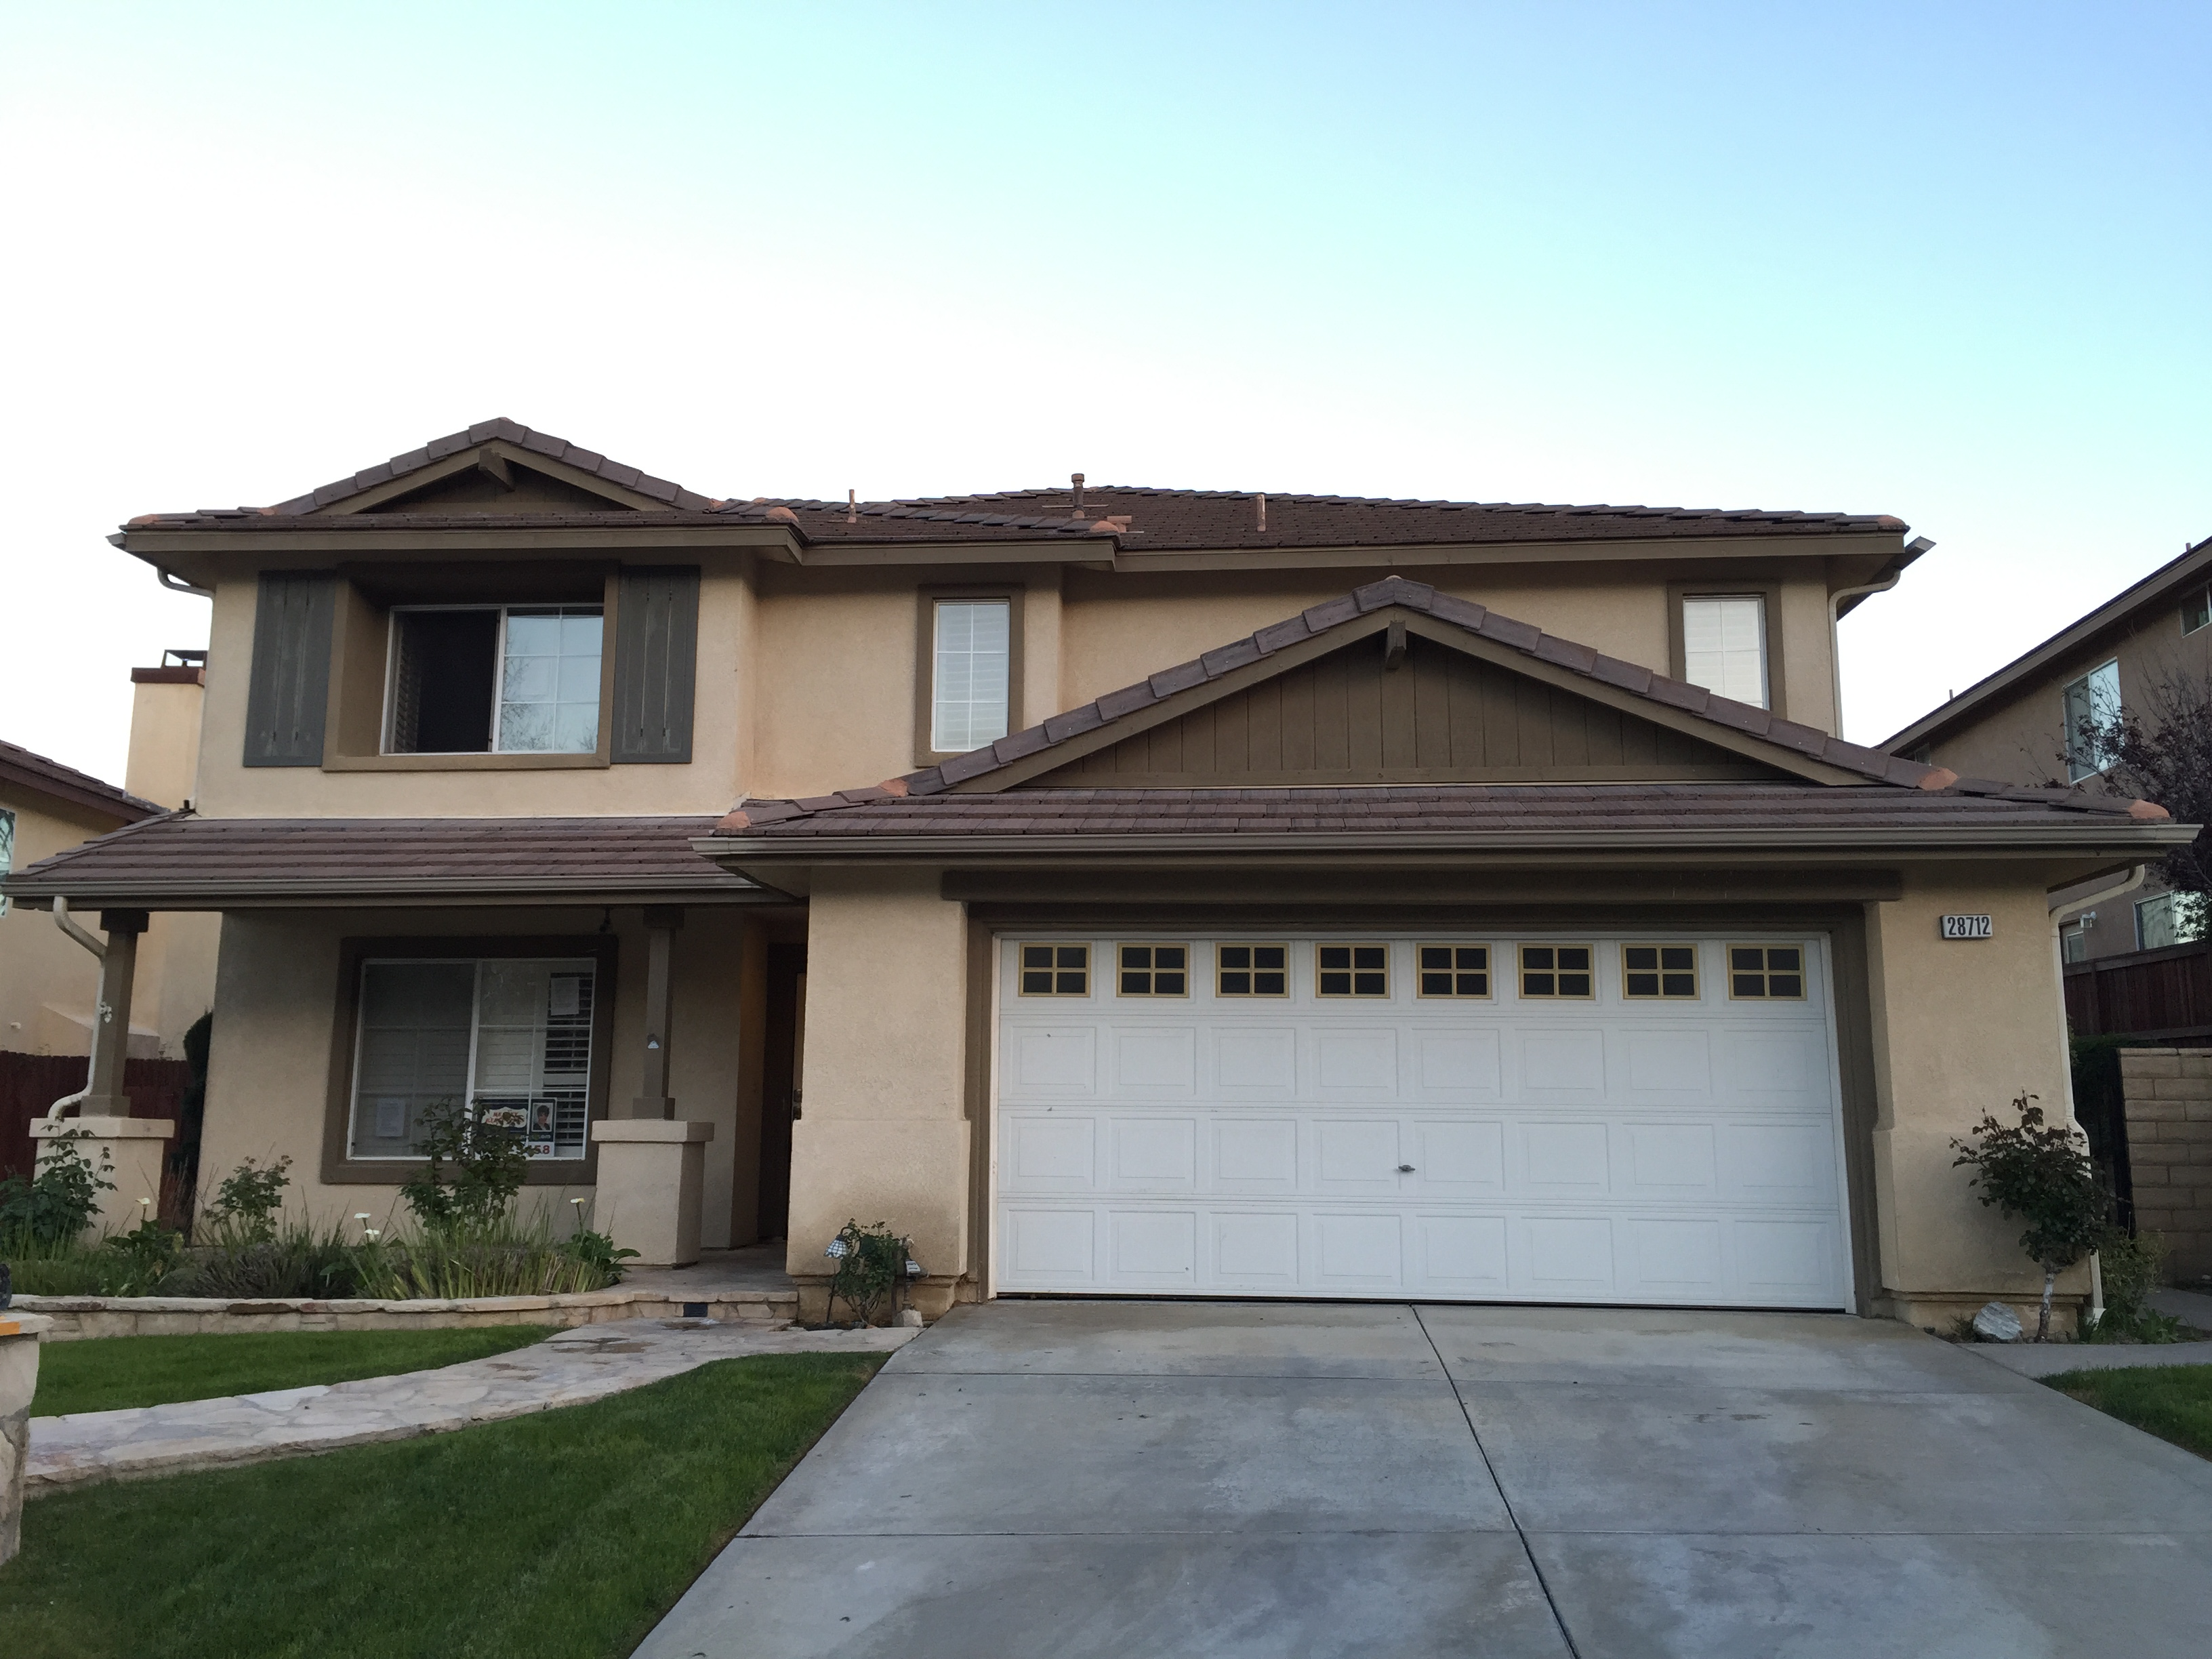 Castaic Ca home for sale - bank owned foreclosure